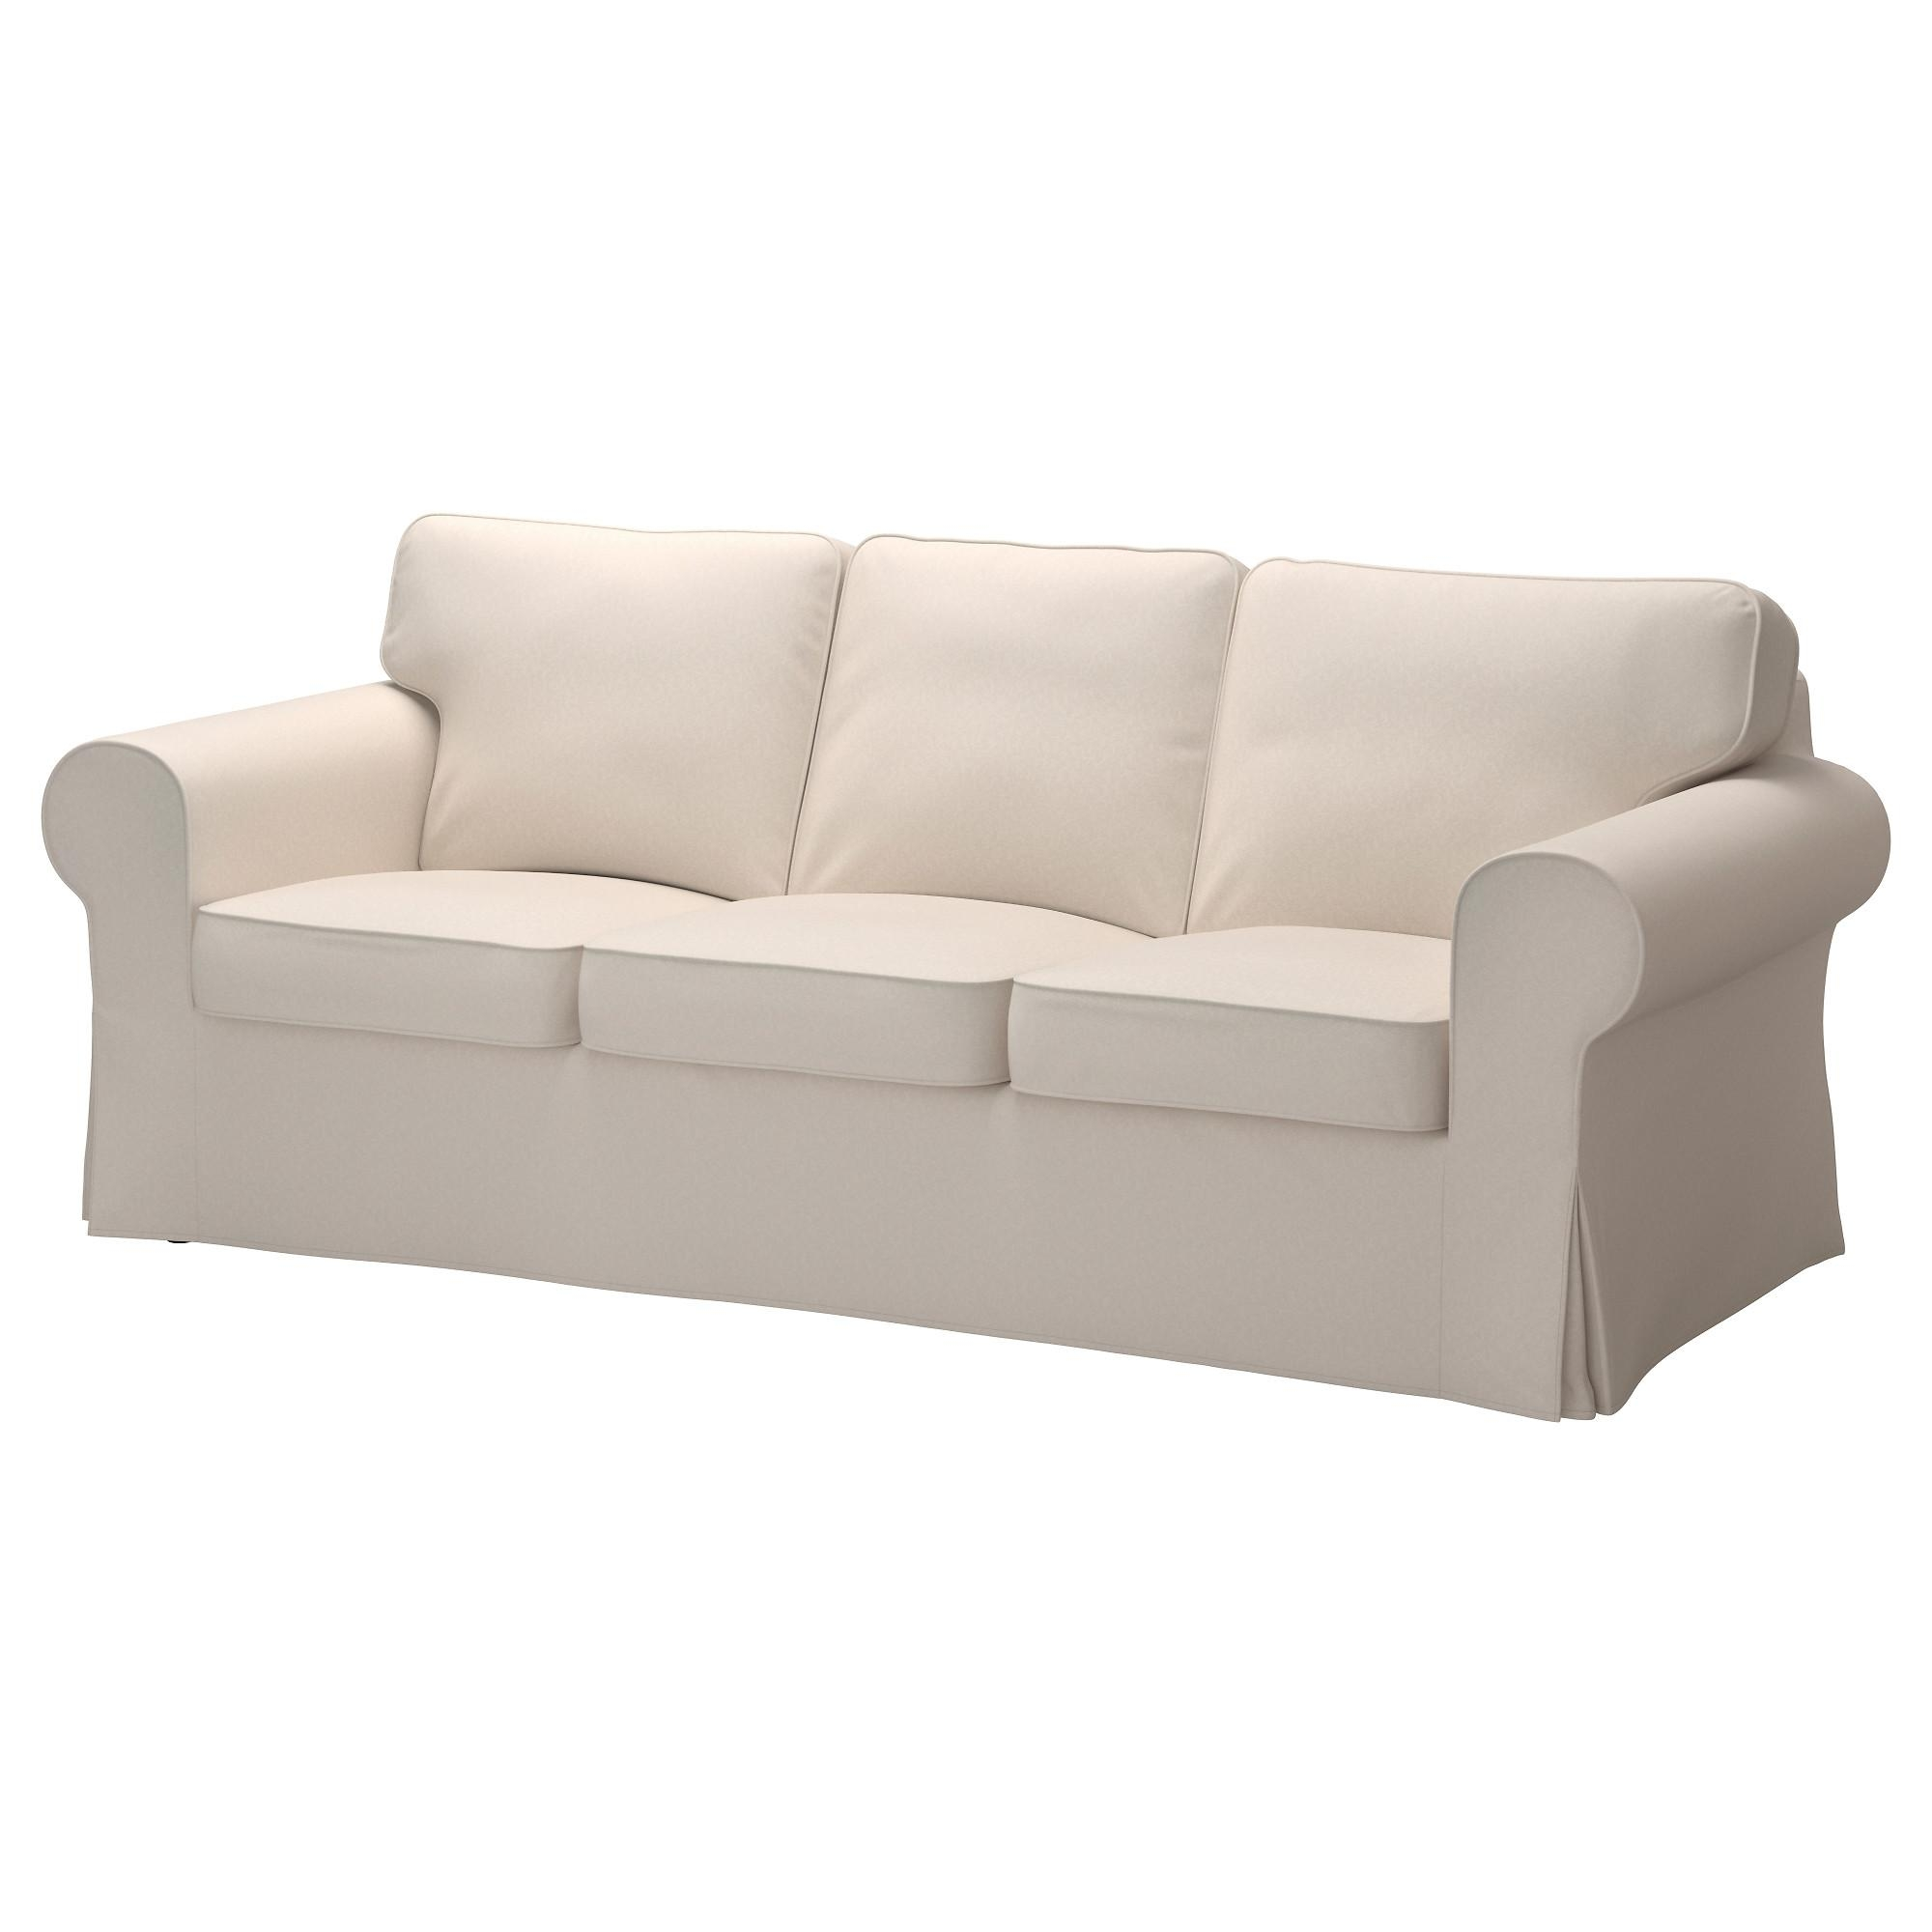 Ektorp Sofa – Lofallet Beige – Ikea With Regard To Ikea Single Sofa Beds (View 20 of 23)